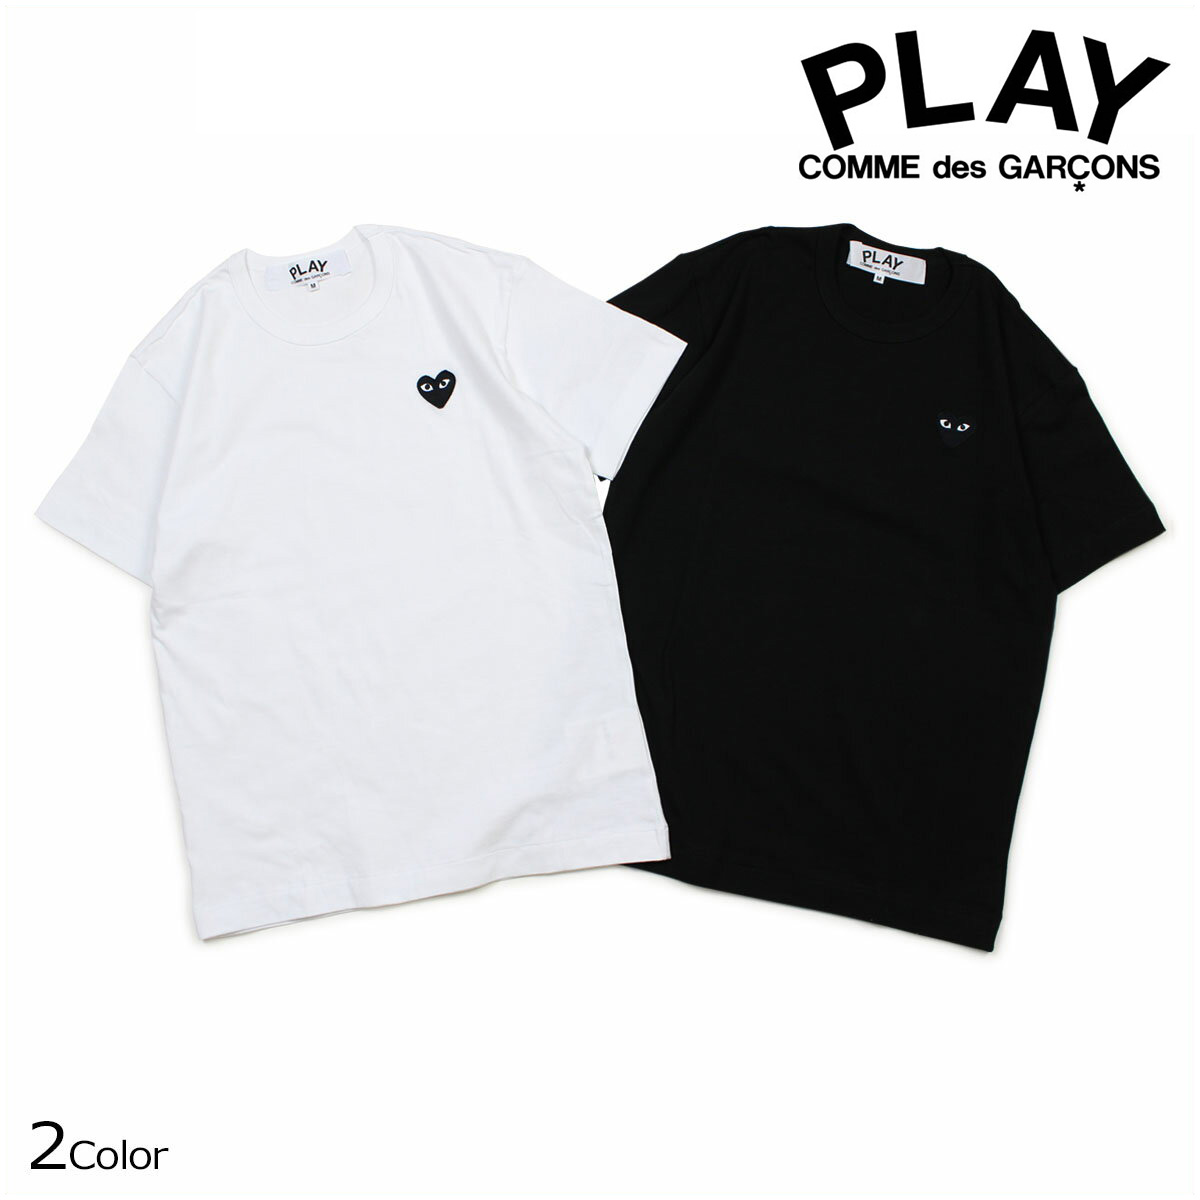 a7bae5e4758c COMME des GARCONS PLAY T-shirt short sleeves コムデギャルソンメンズ BLACK HEART T-SHIRT  black white AZT064